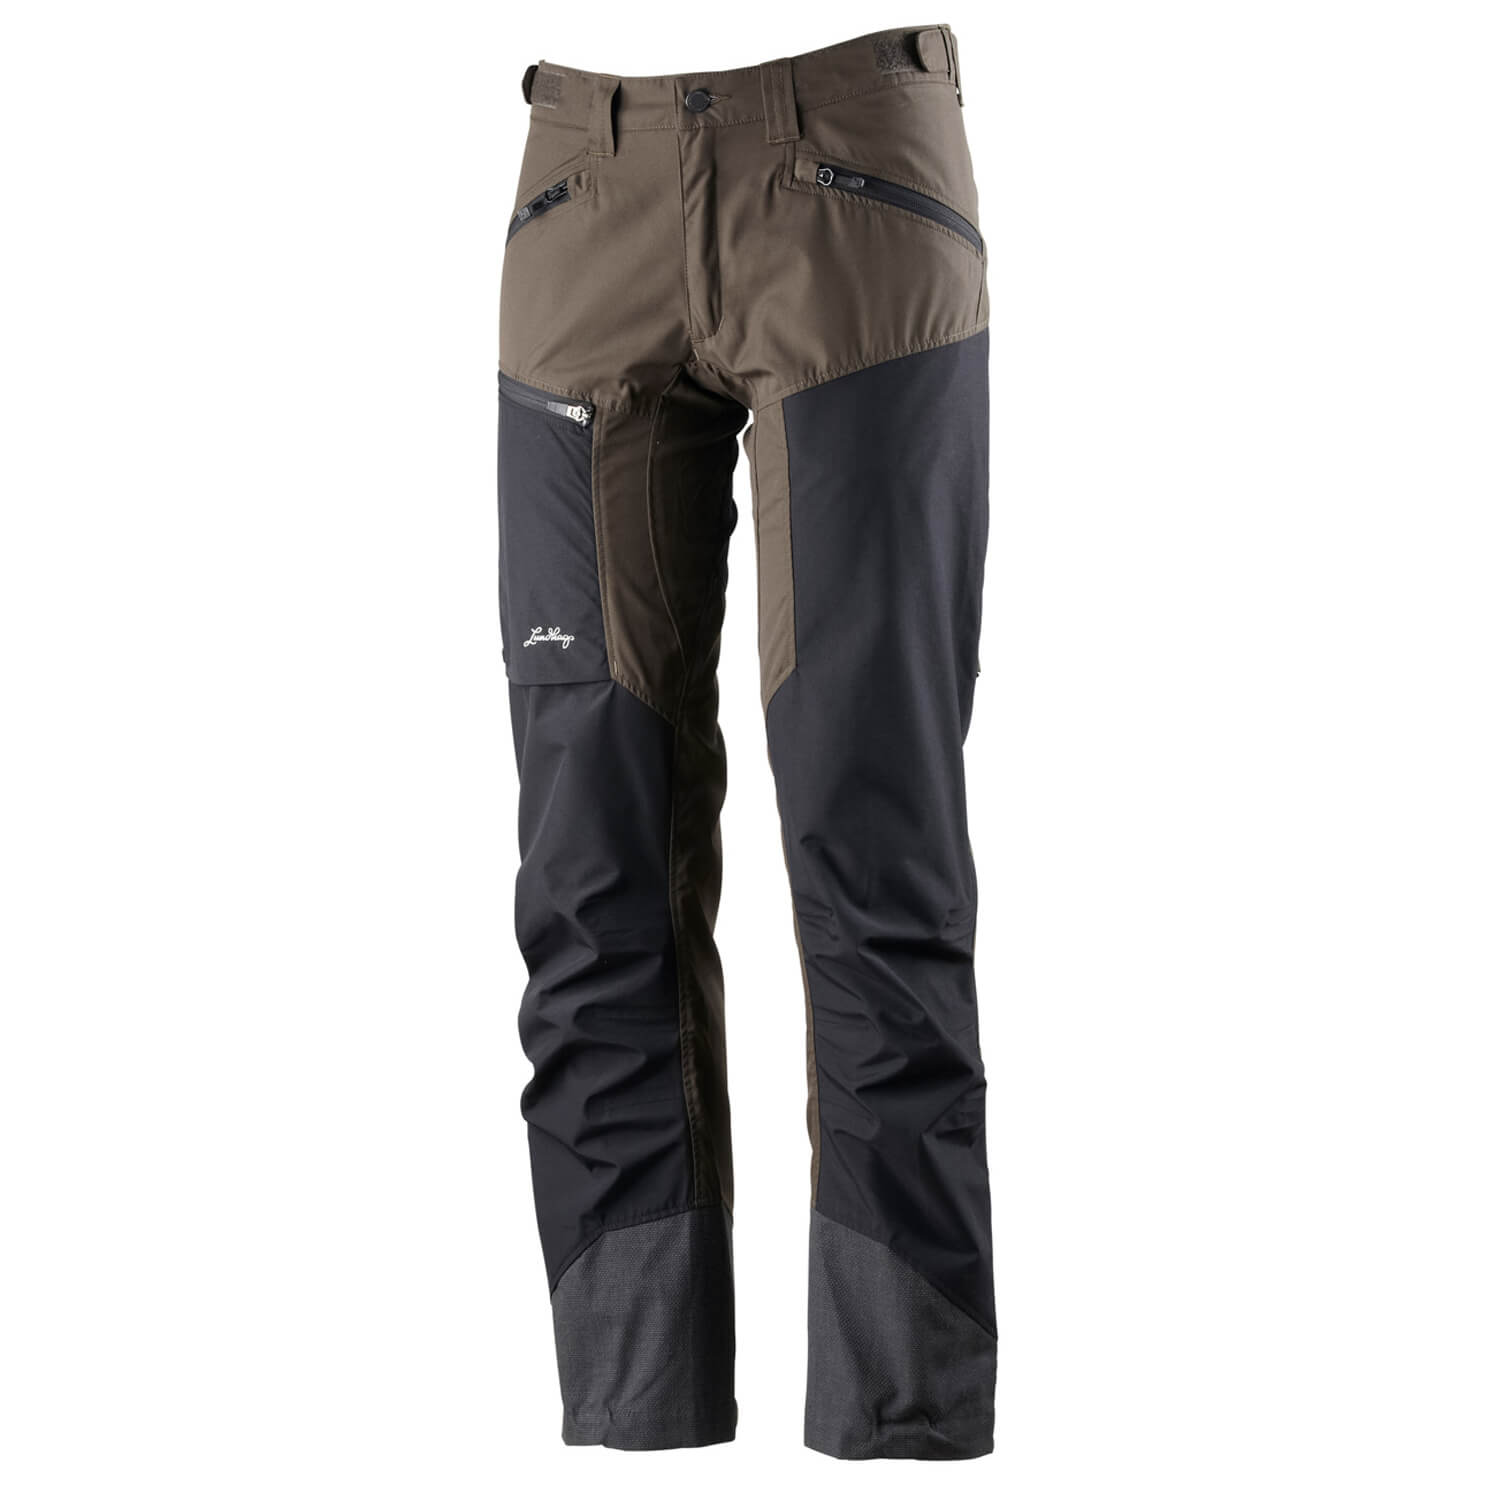 New Outdoor Clothing Gt Outdoor Pants Gt Trekking Pants Gt Ortovox  Women